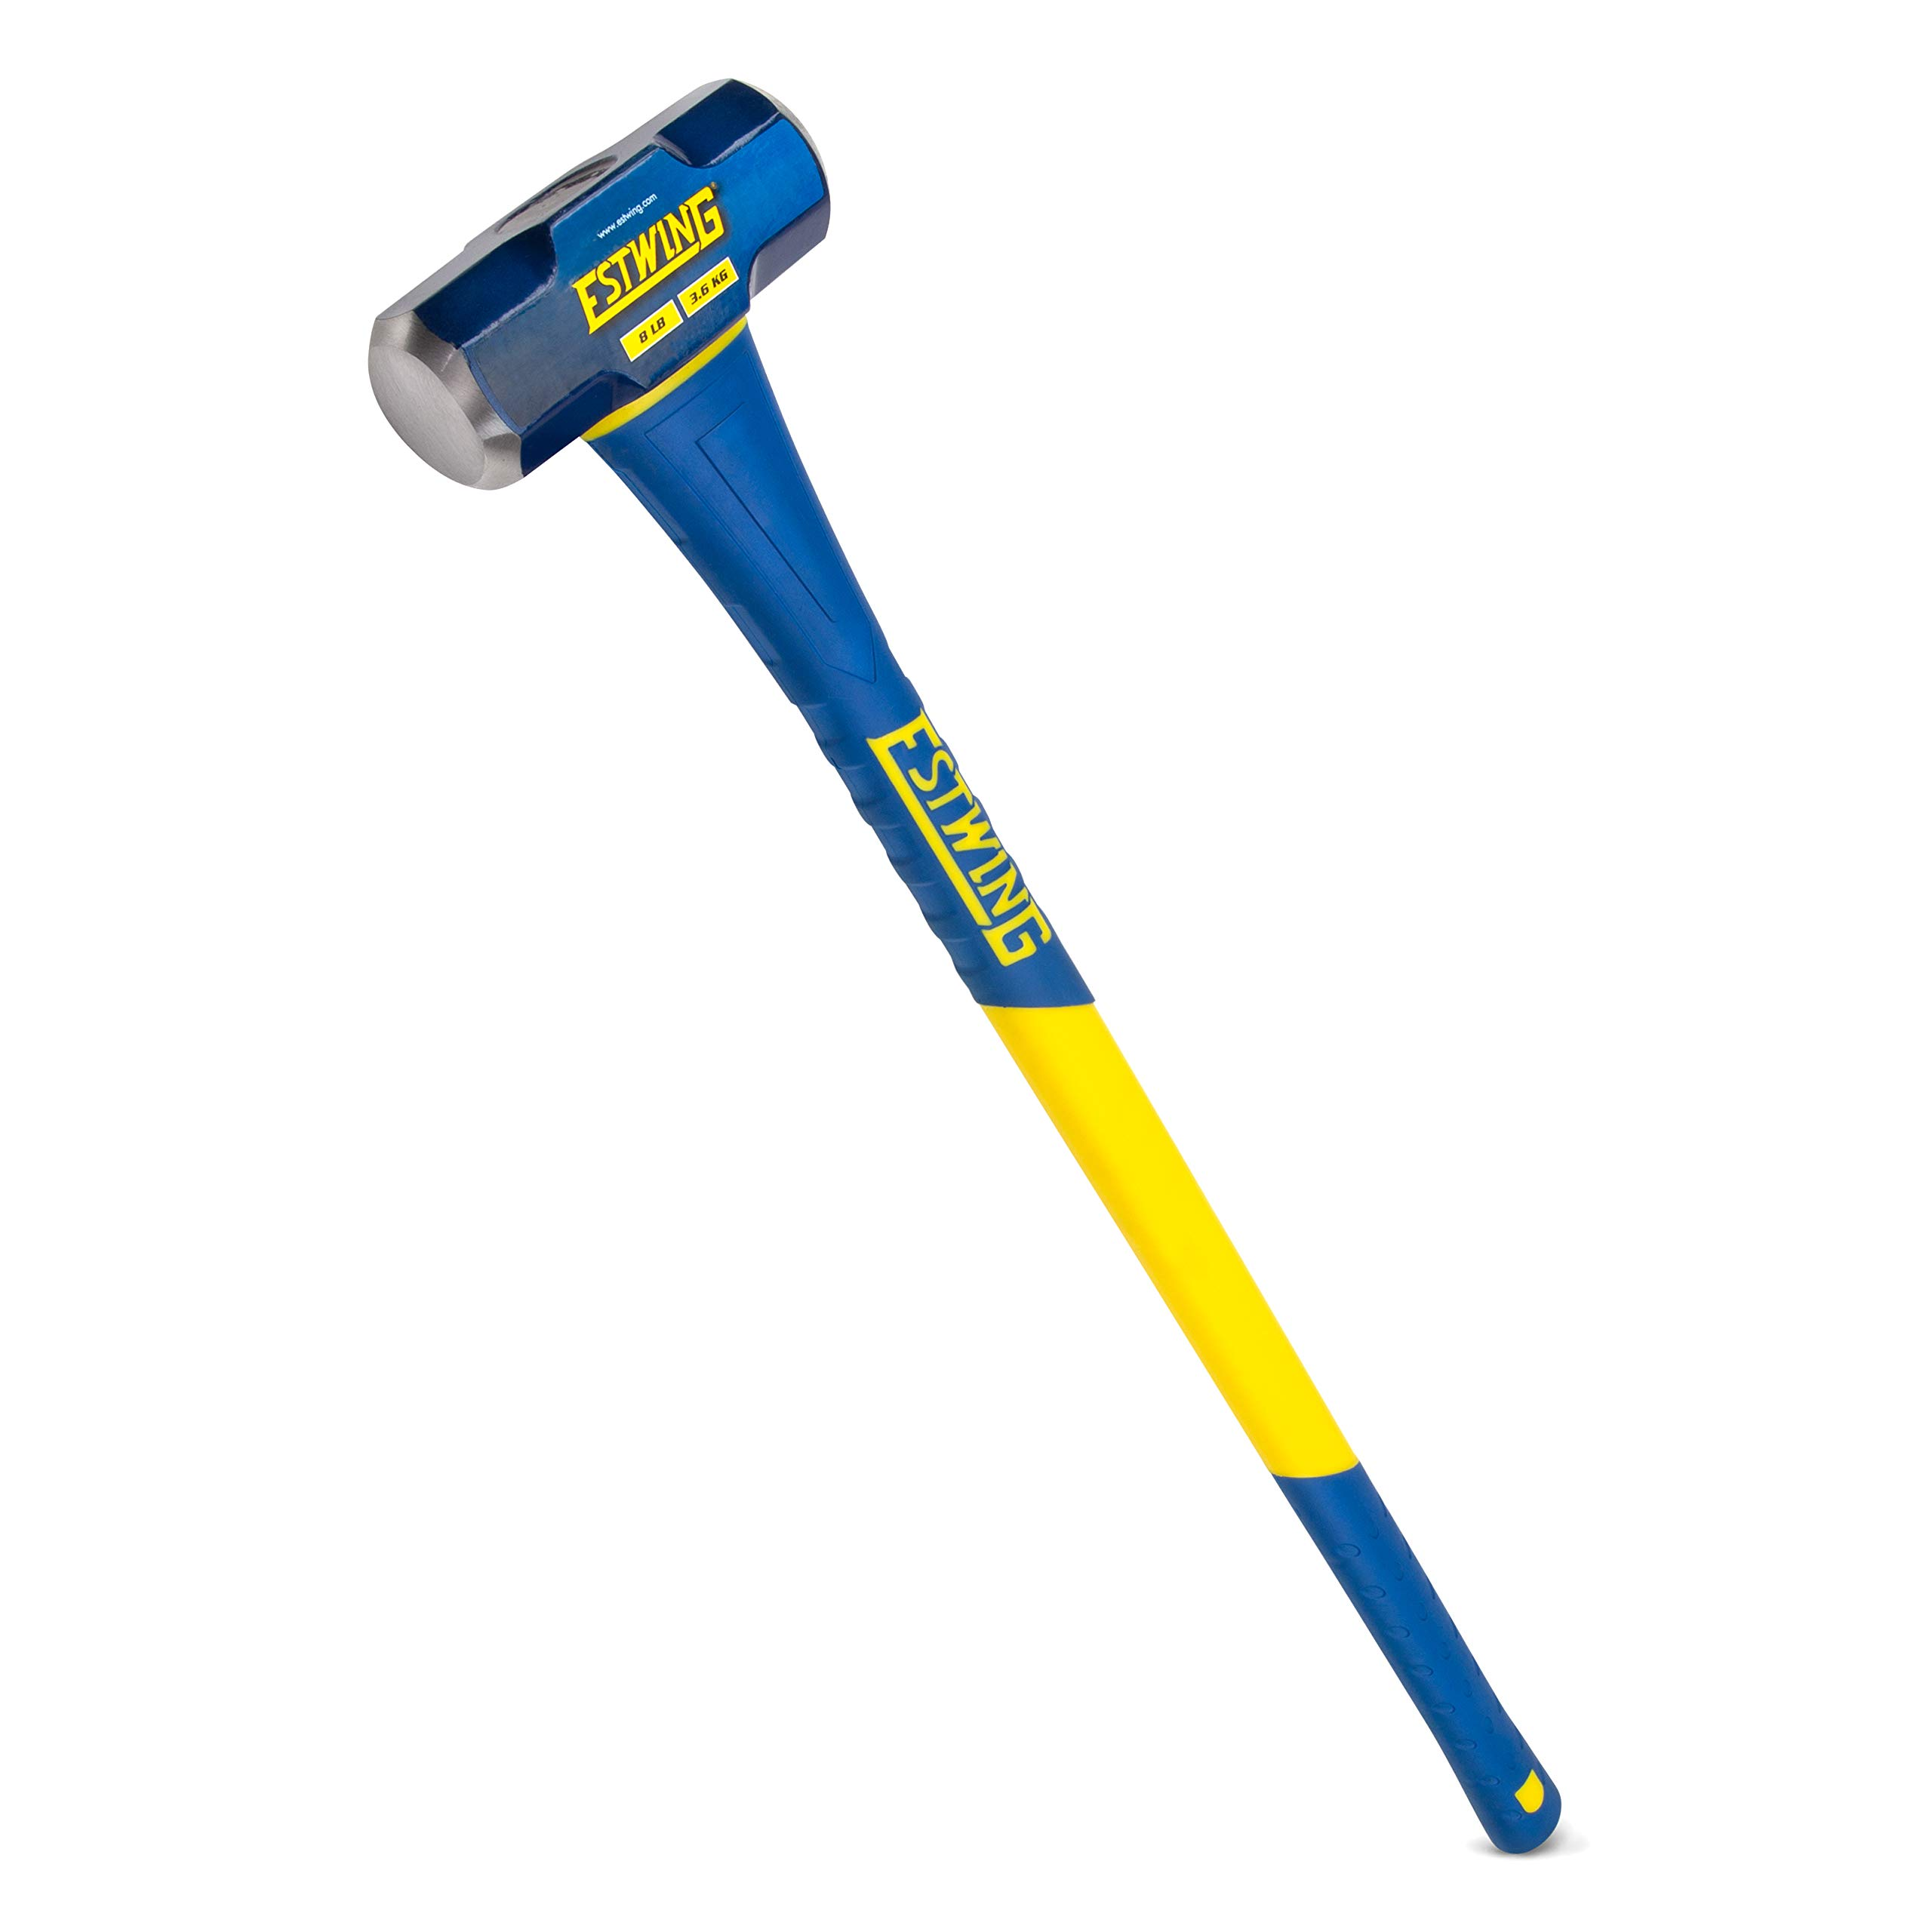 Estwing 8-Pound Hard Face Sledge Hammer, 36-Inch Fiberglass Handle (ESH-836F) by Estwing